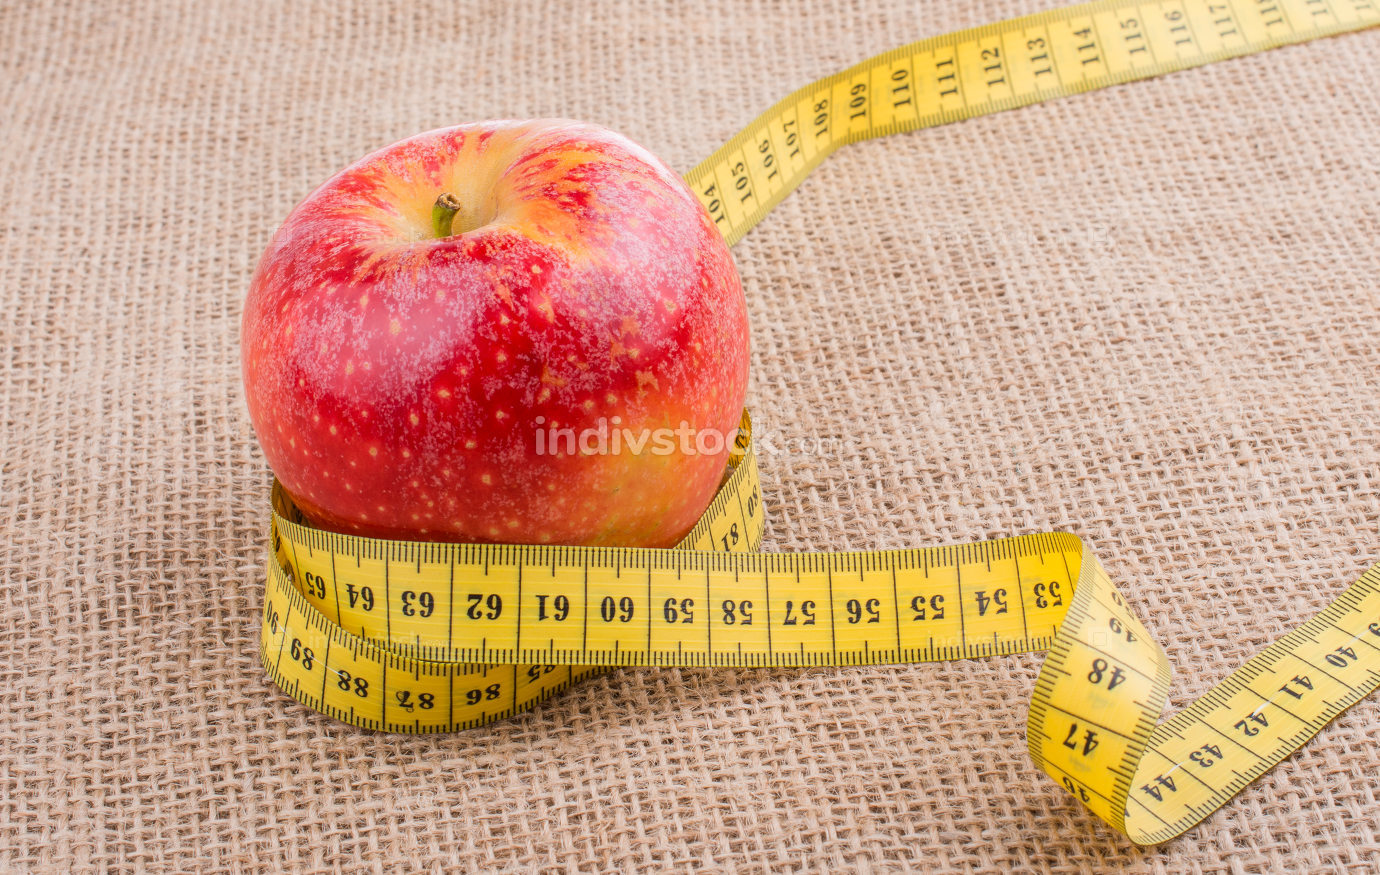 Red apple with a measurement  tape on it